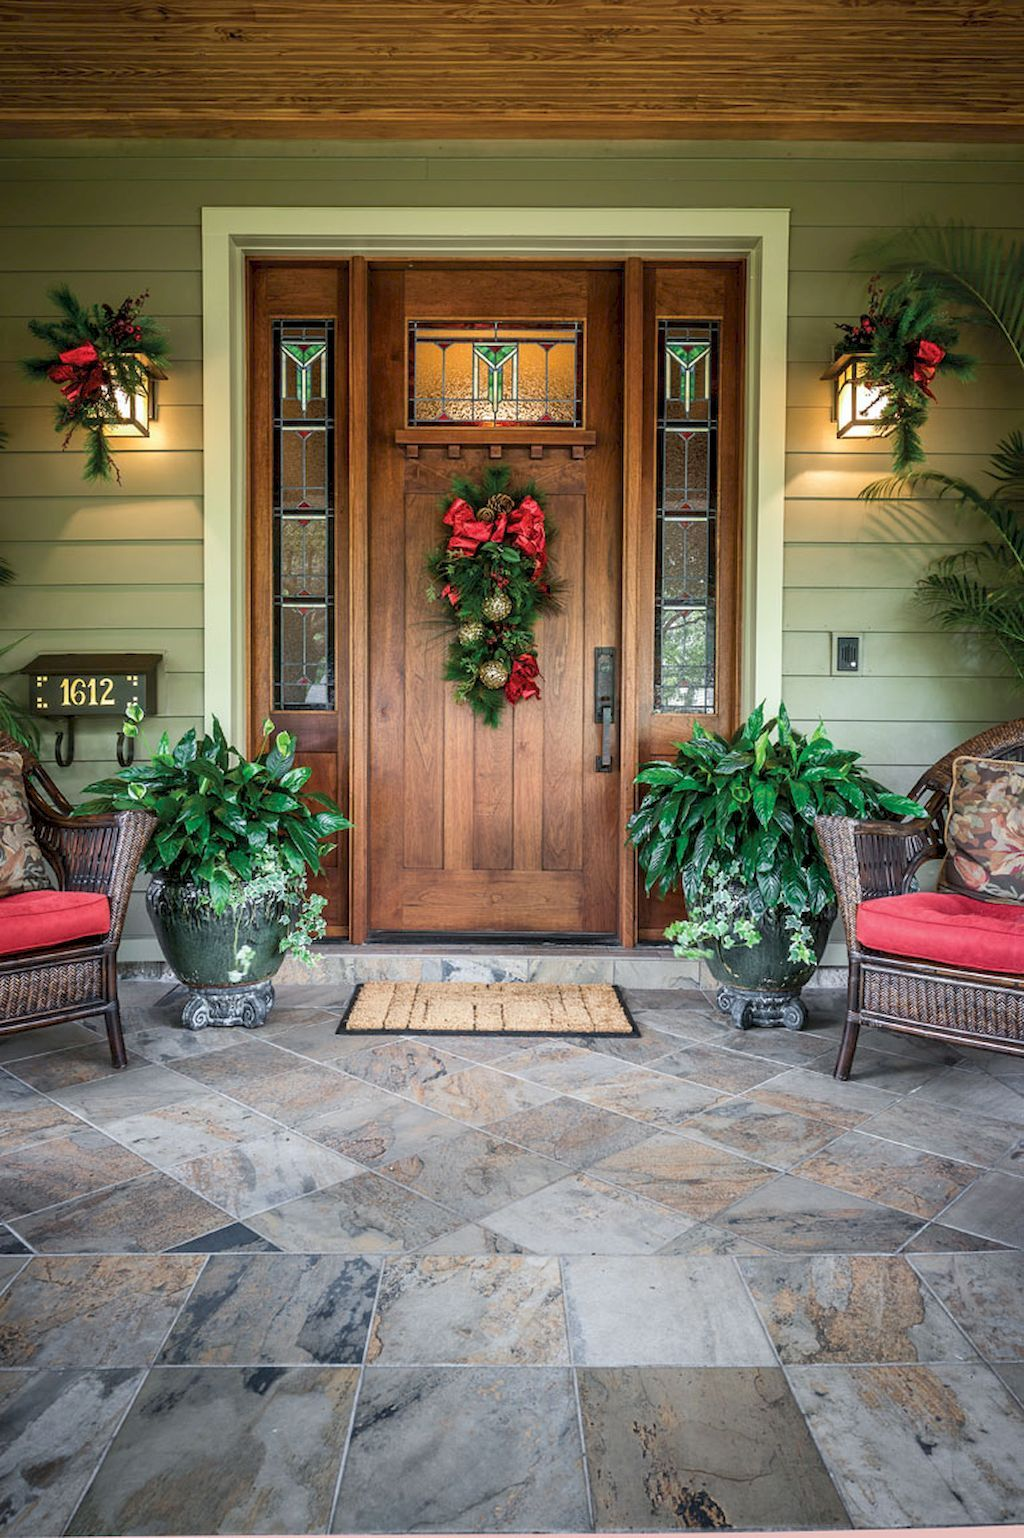 Cool 43 Marvelous Front Door with Sidelights https://besideroom.co/43-marvelous-front-door-sidelights/